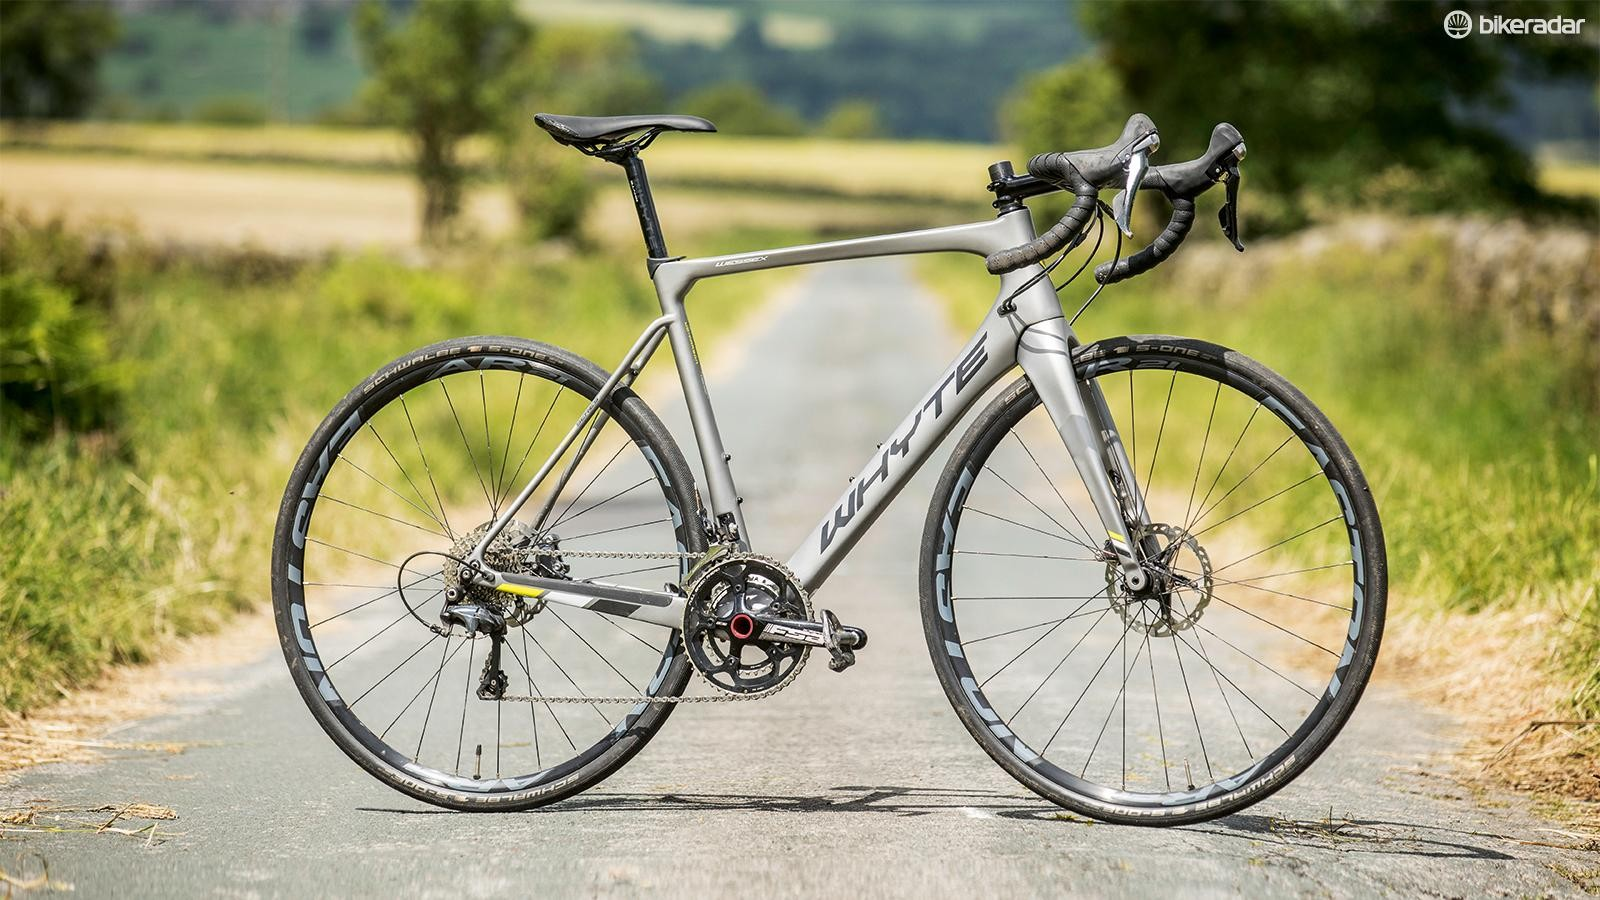 Mudguards, fat tyres, chunky rims and disc brakes contribute to a 9.13kg weight